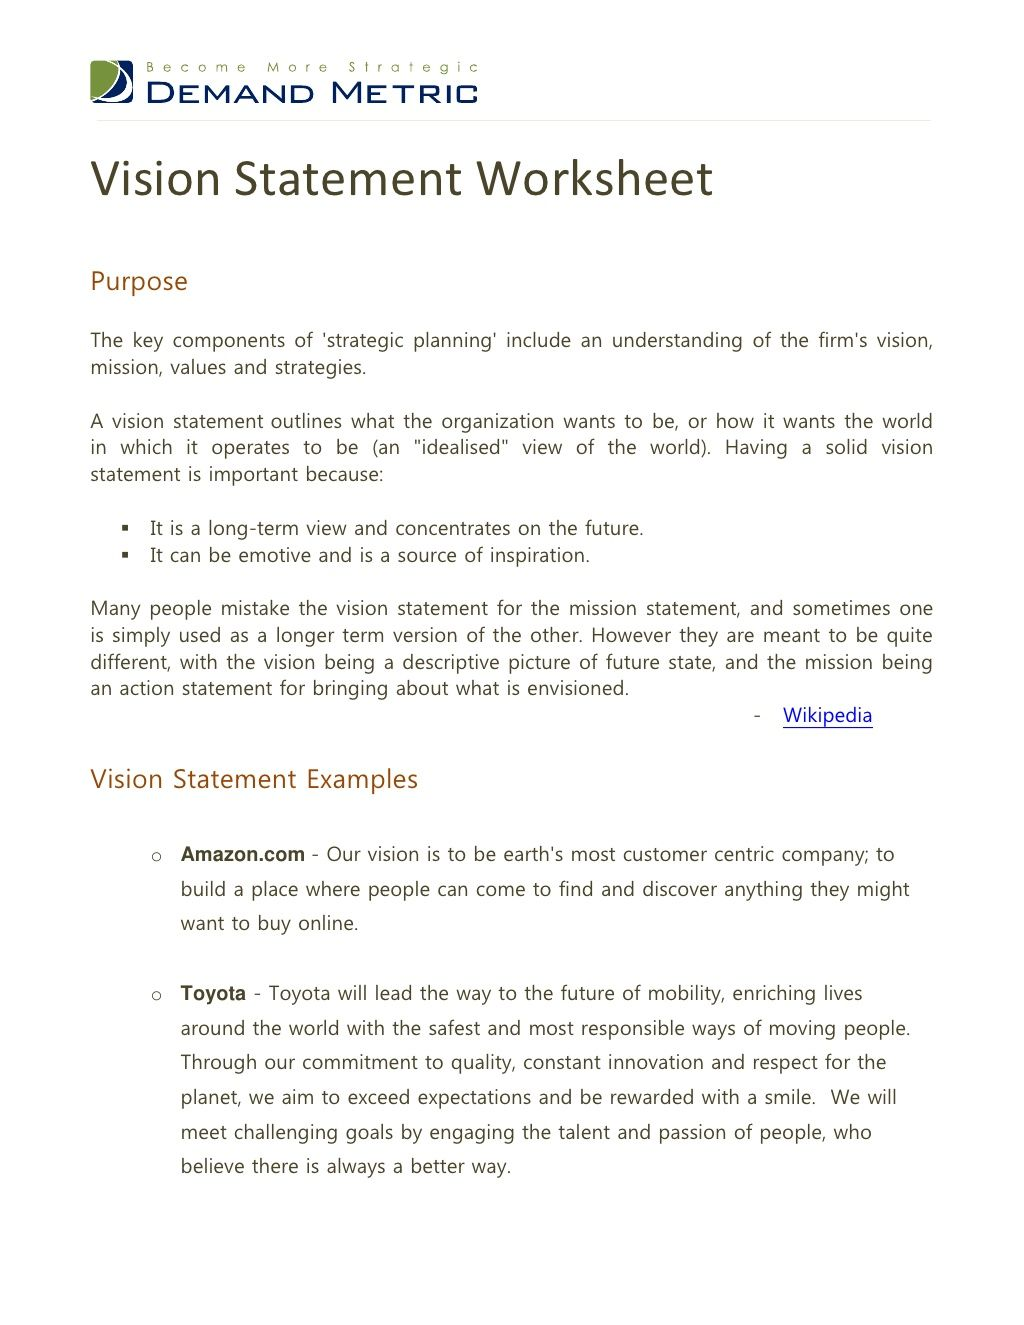 Great Vision Statement Worksheet By Demand Metric An